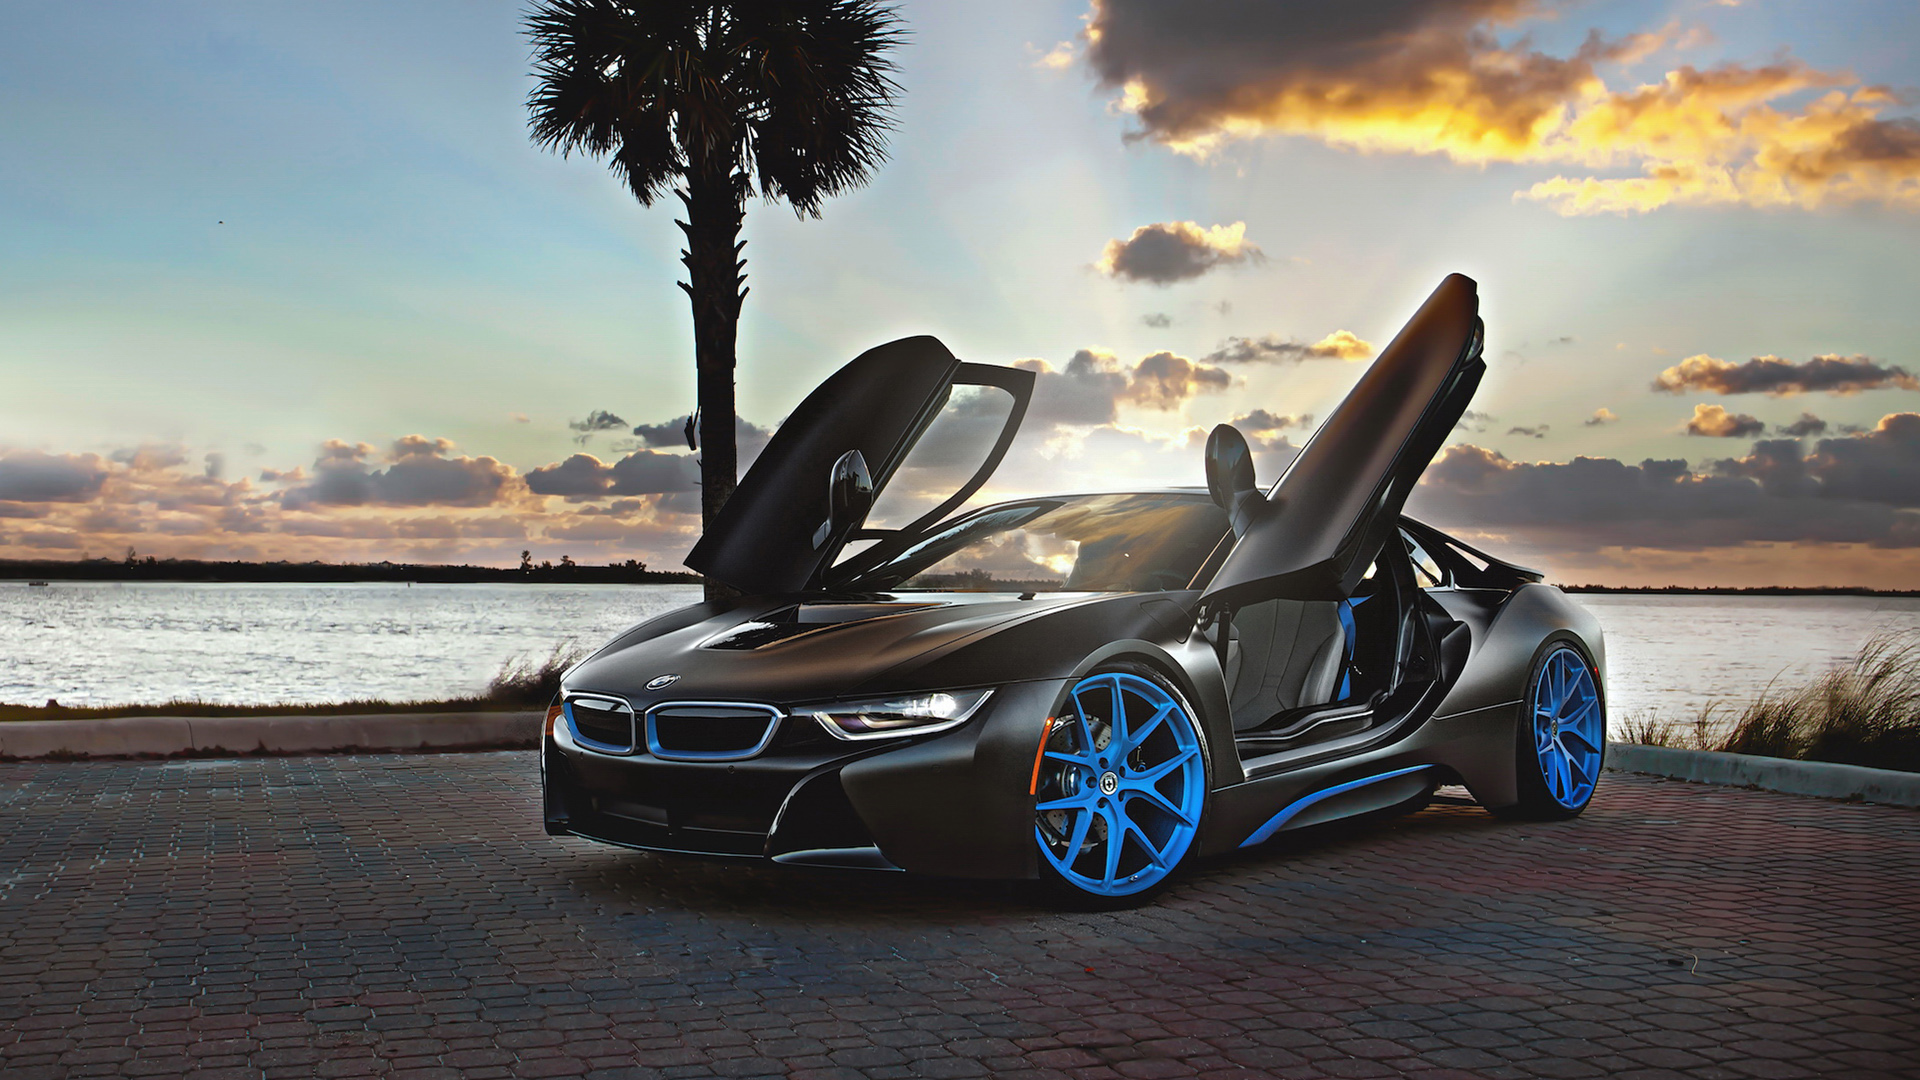 Bmw I8 Blue Hre Wheels Wallpaper Hd Car Wallpapers Id 5189